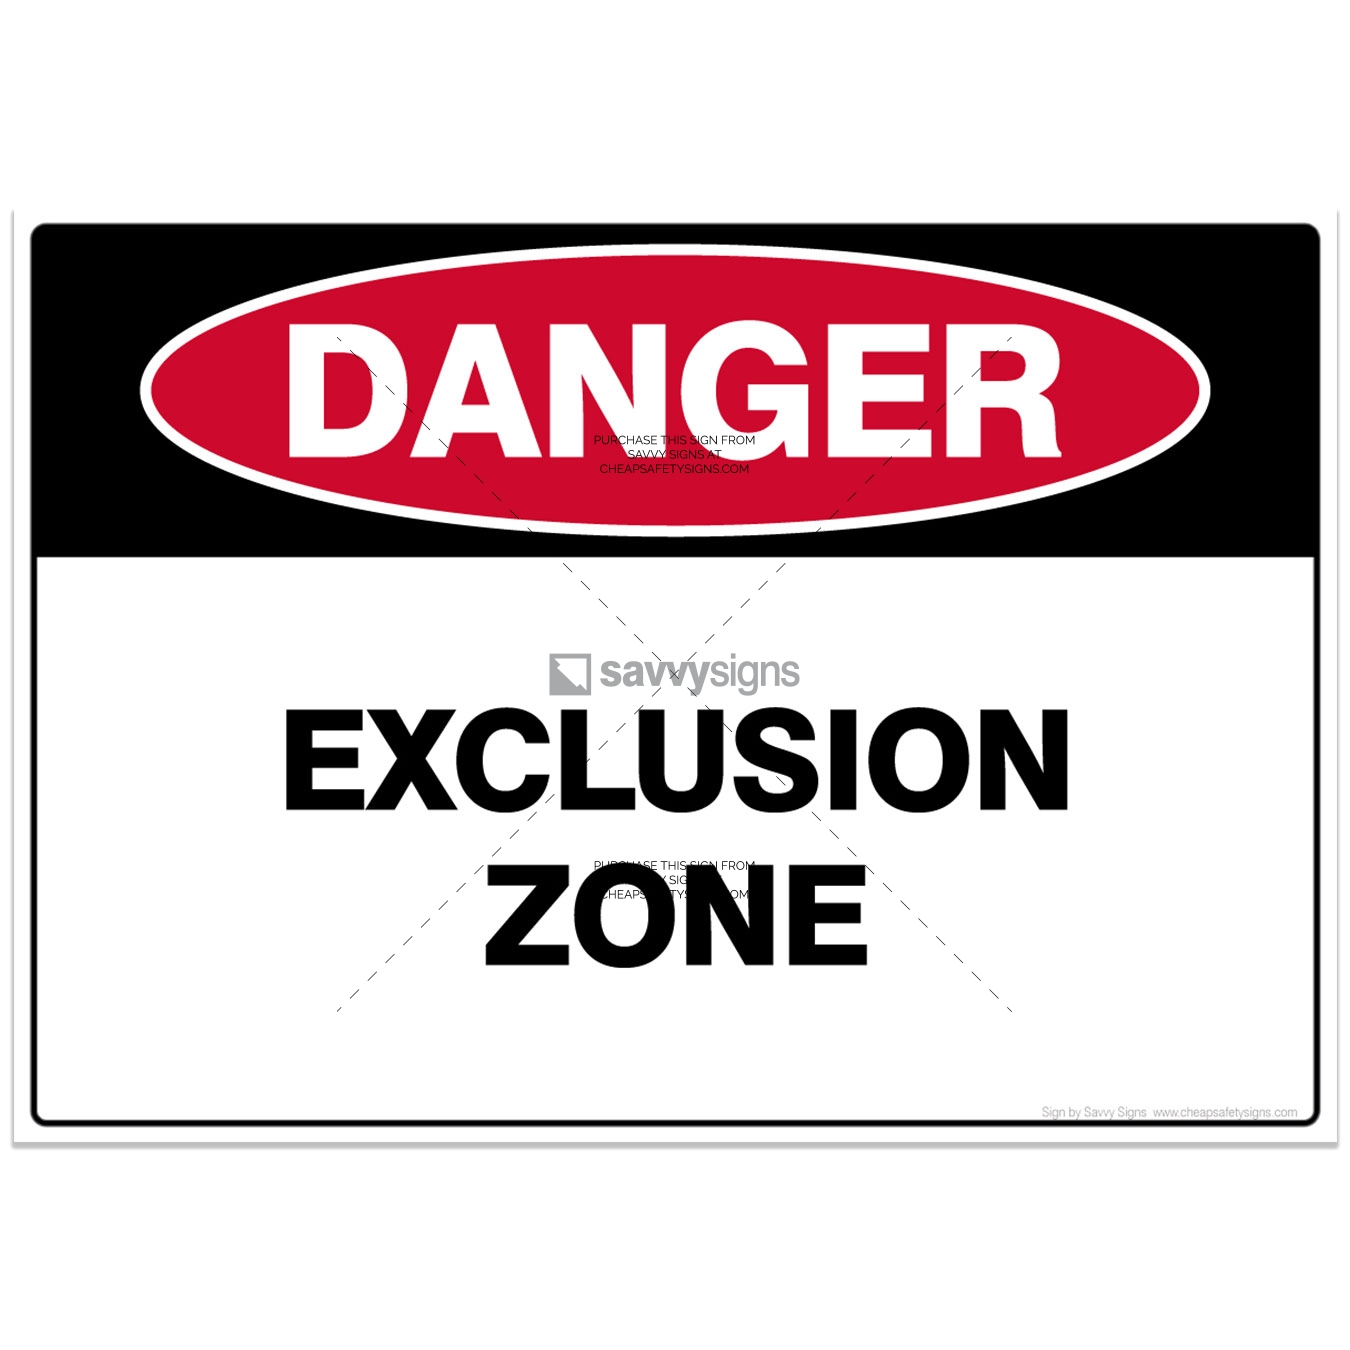 SSDAN3042-DANGER-Workplace-Safety-Signs_Savvy-Signs_v4.1